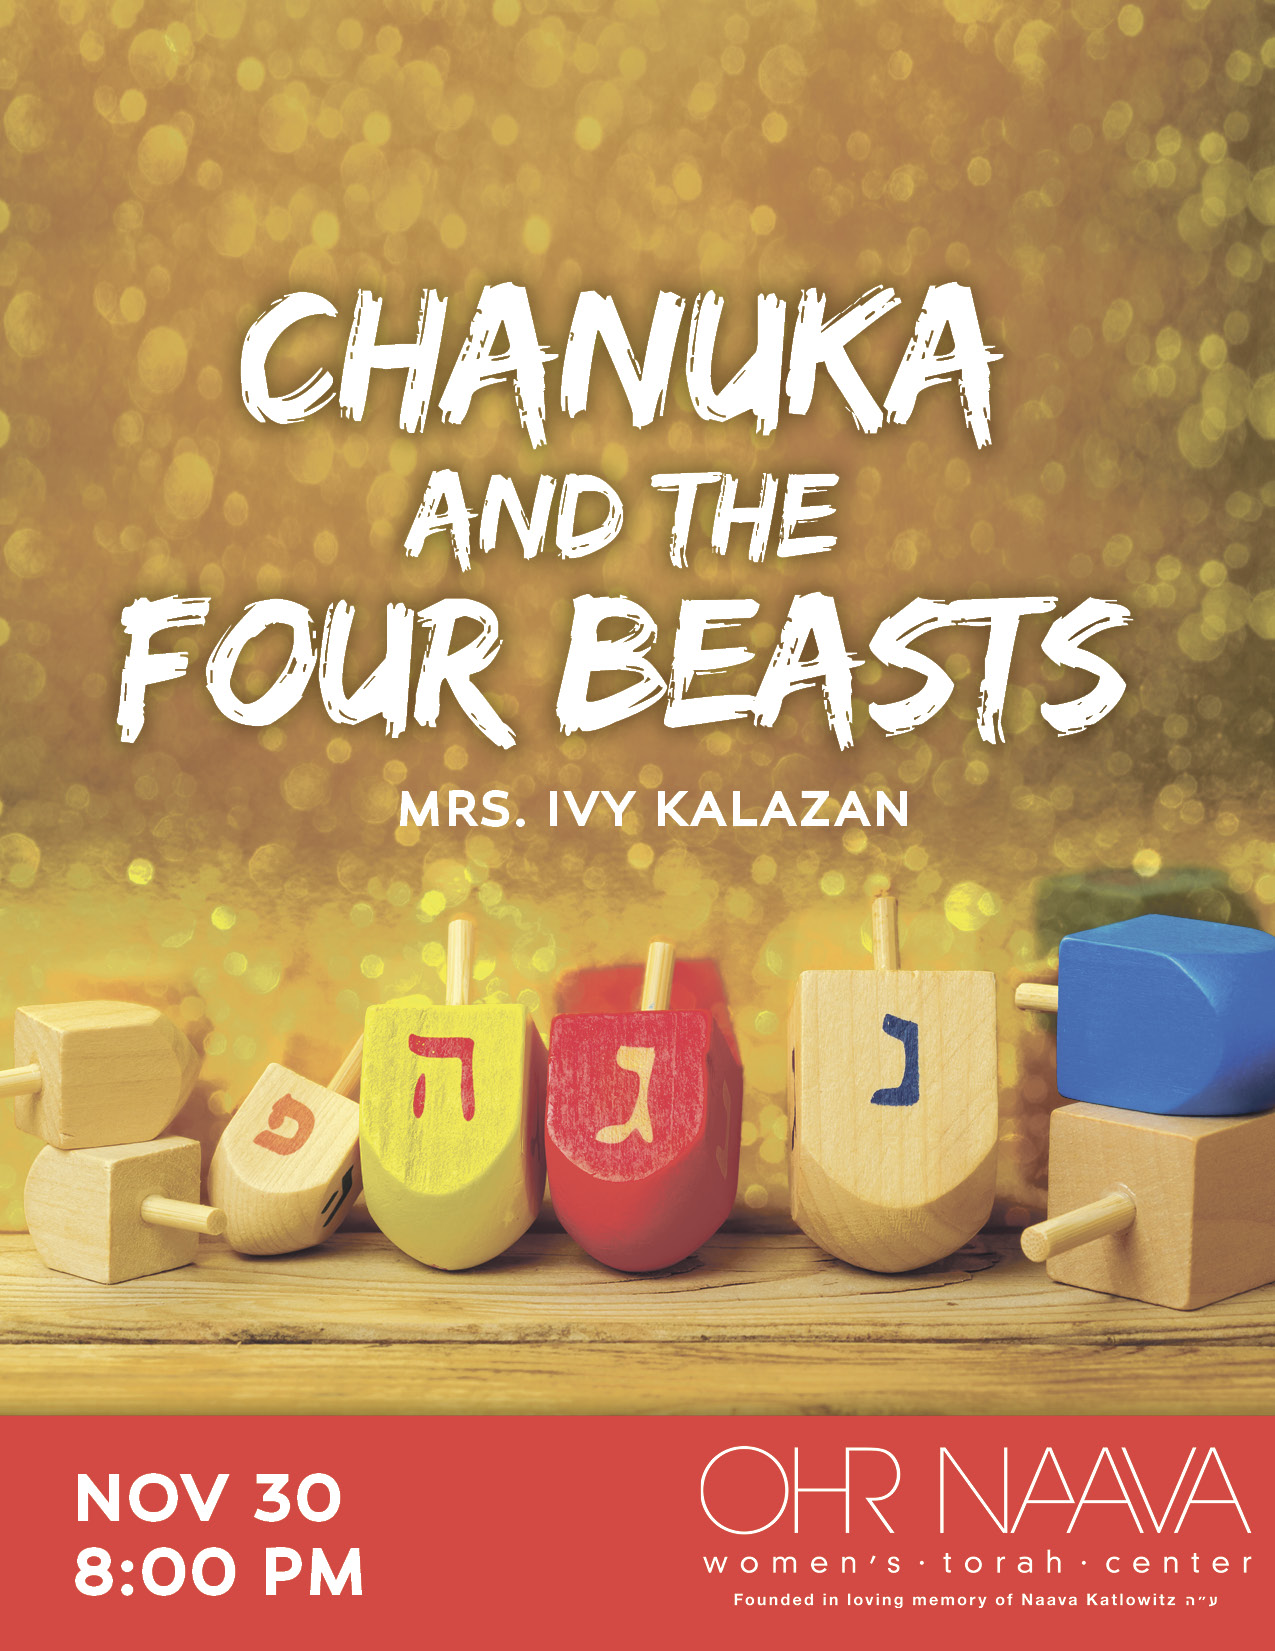 Chanuka and the Four Beasts